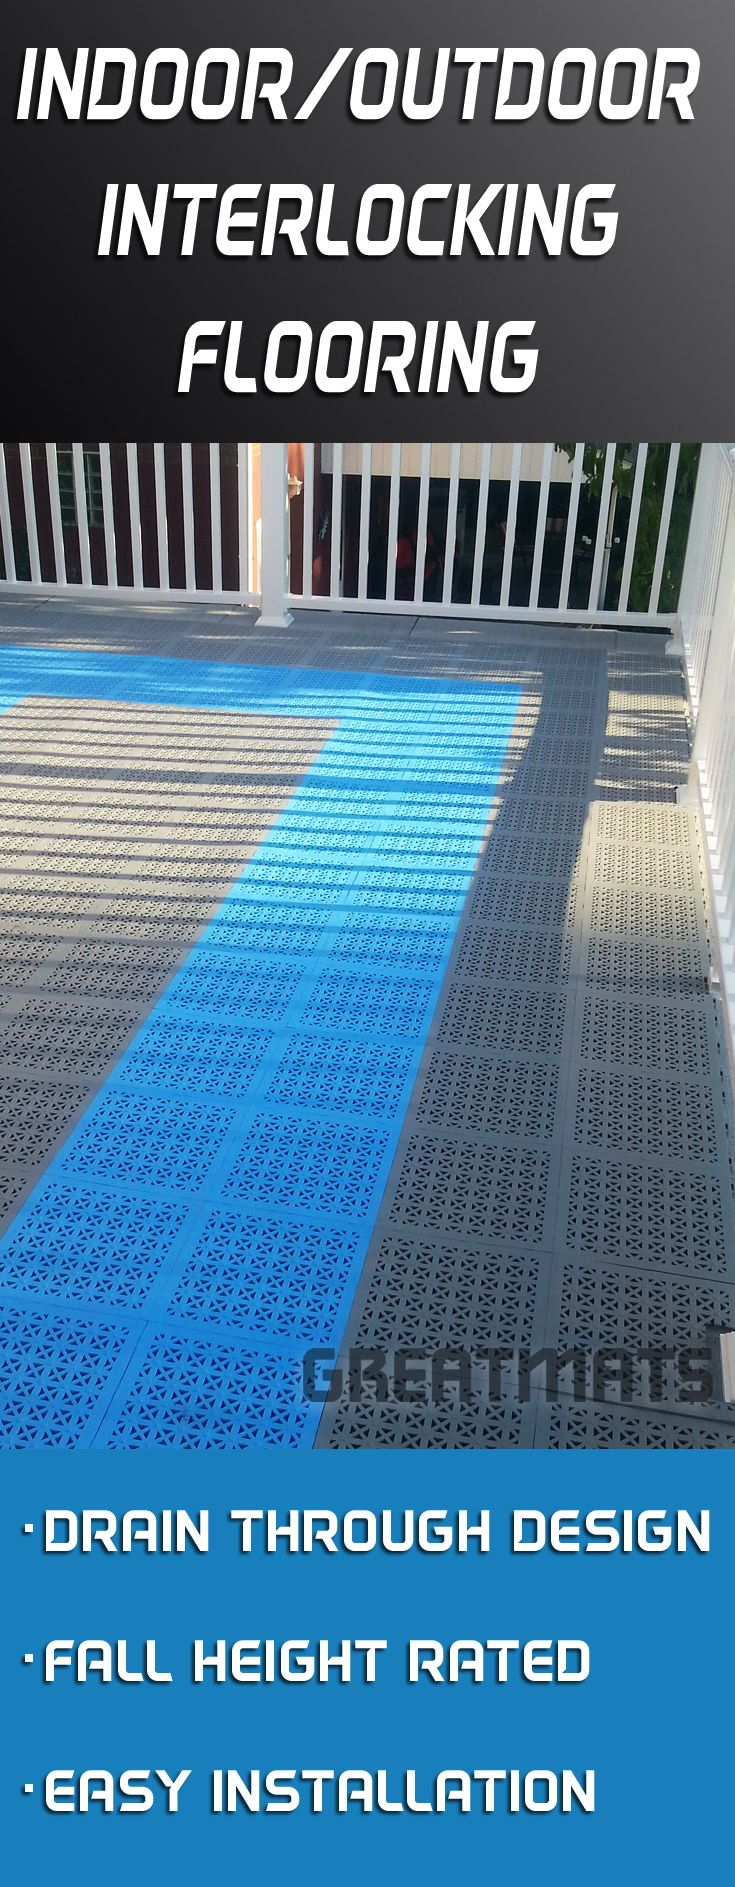 Best 25 outdoor flooring ideas on pinterest diy outdoor for Indoor outdoor flooring options